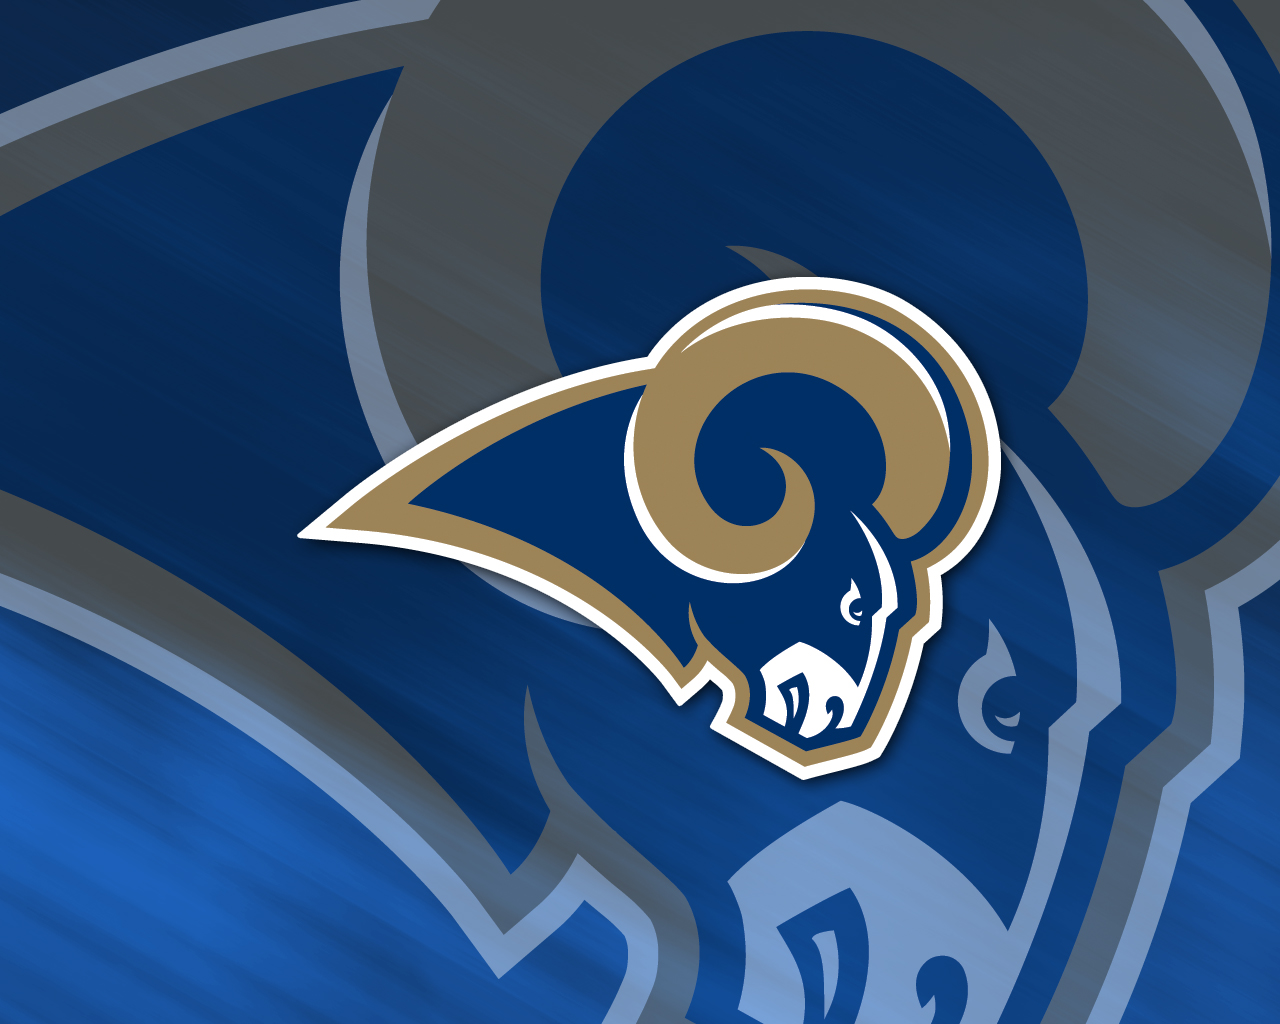 History Of All Logos All St Louis Rams Logos. Round Shaped Diamond Engagement Rings. Green Diamond Engagement Rings. Flower Design Rings. Rectangle Radiant Cut Engagement Rings. Marquis Baguette Diamond Engagement Rings. Baby Carriage Rings. Wife Lebron James Wedding Rings. Elle Lively Engagement Rings